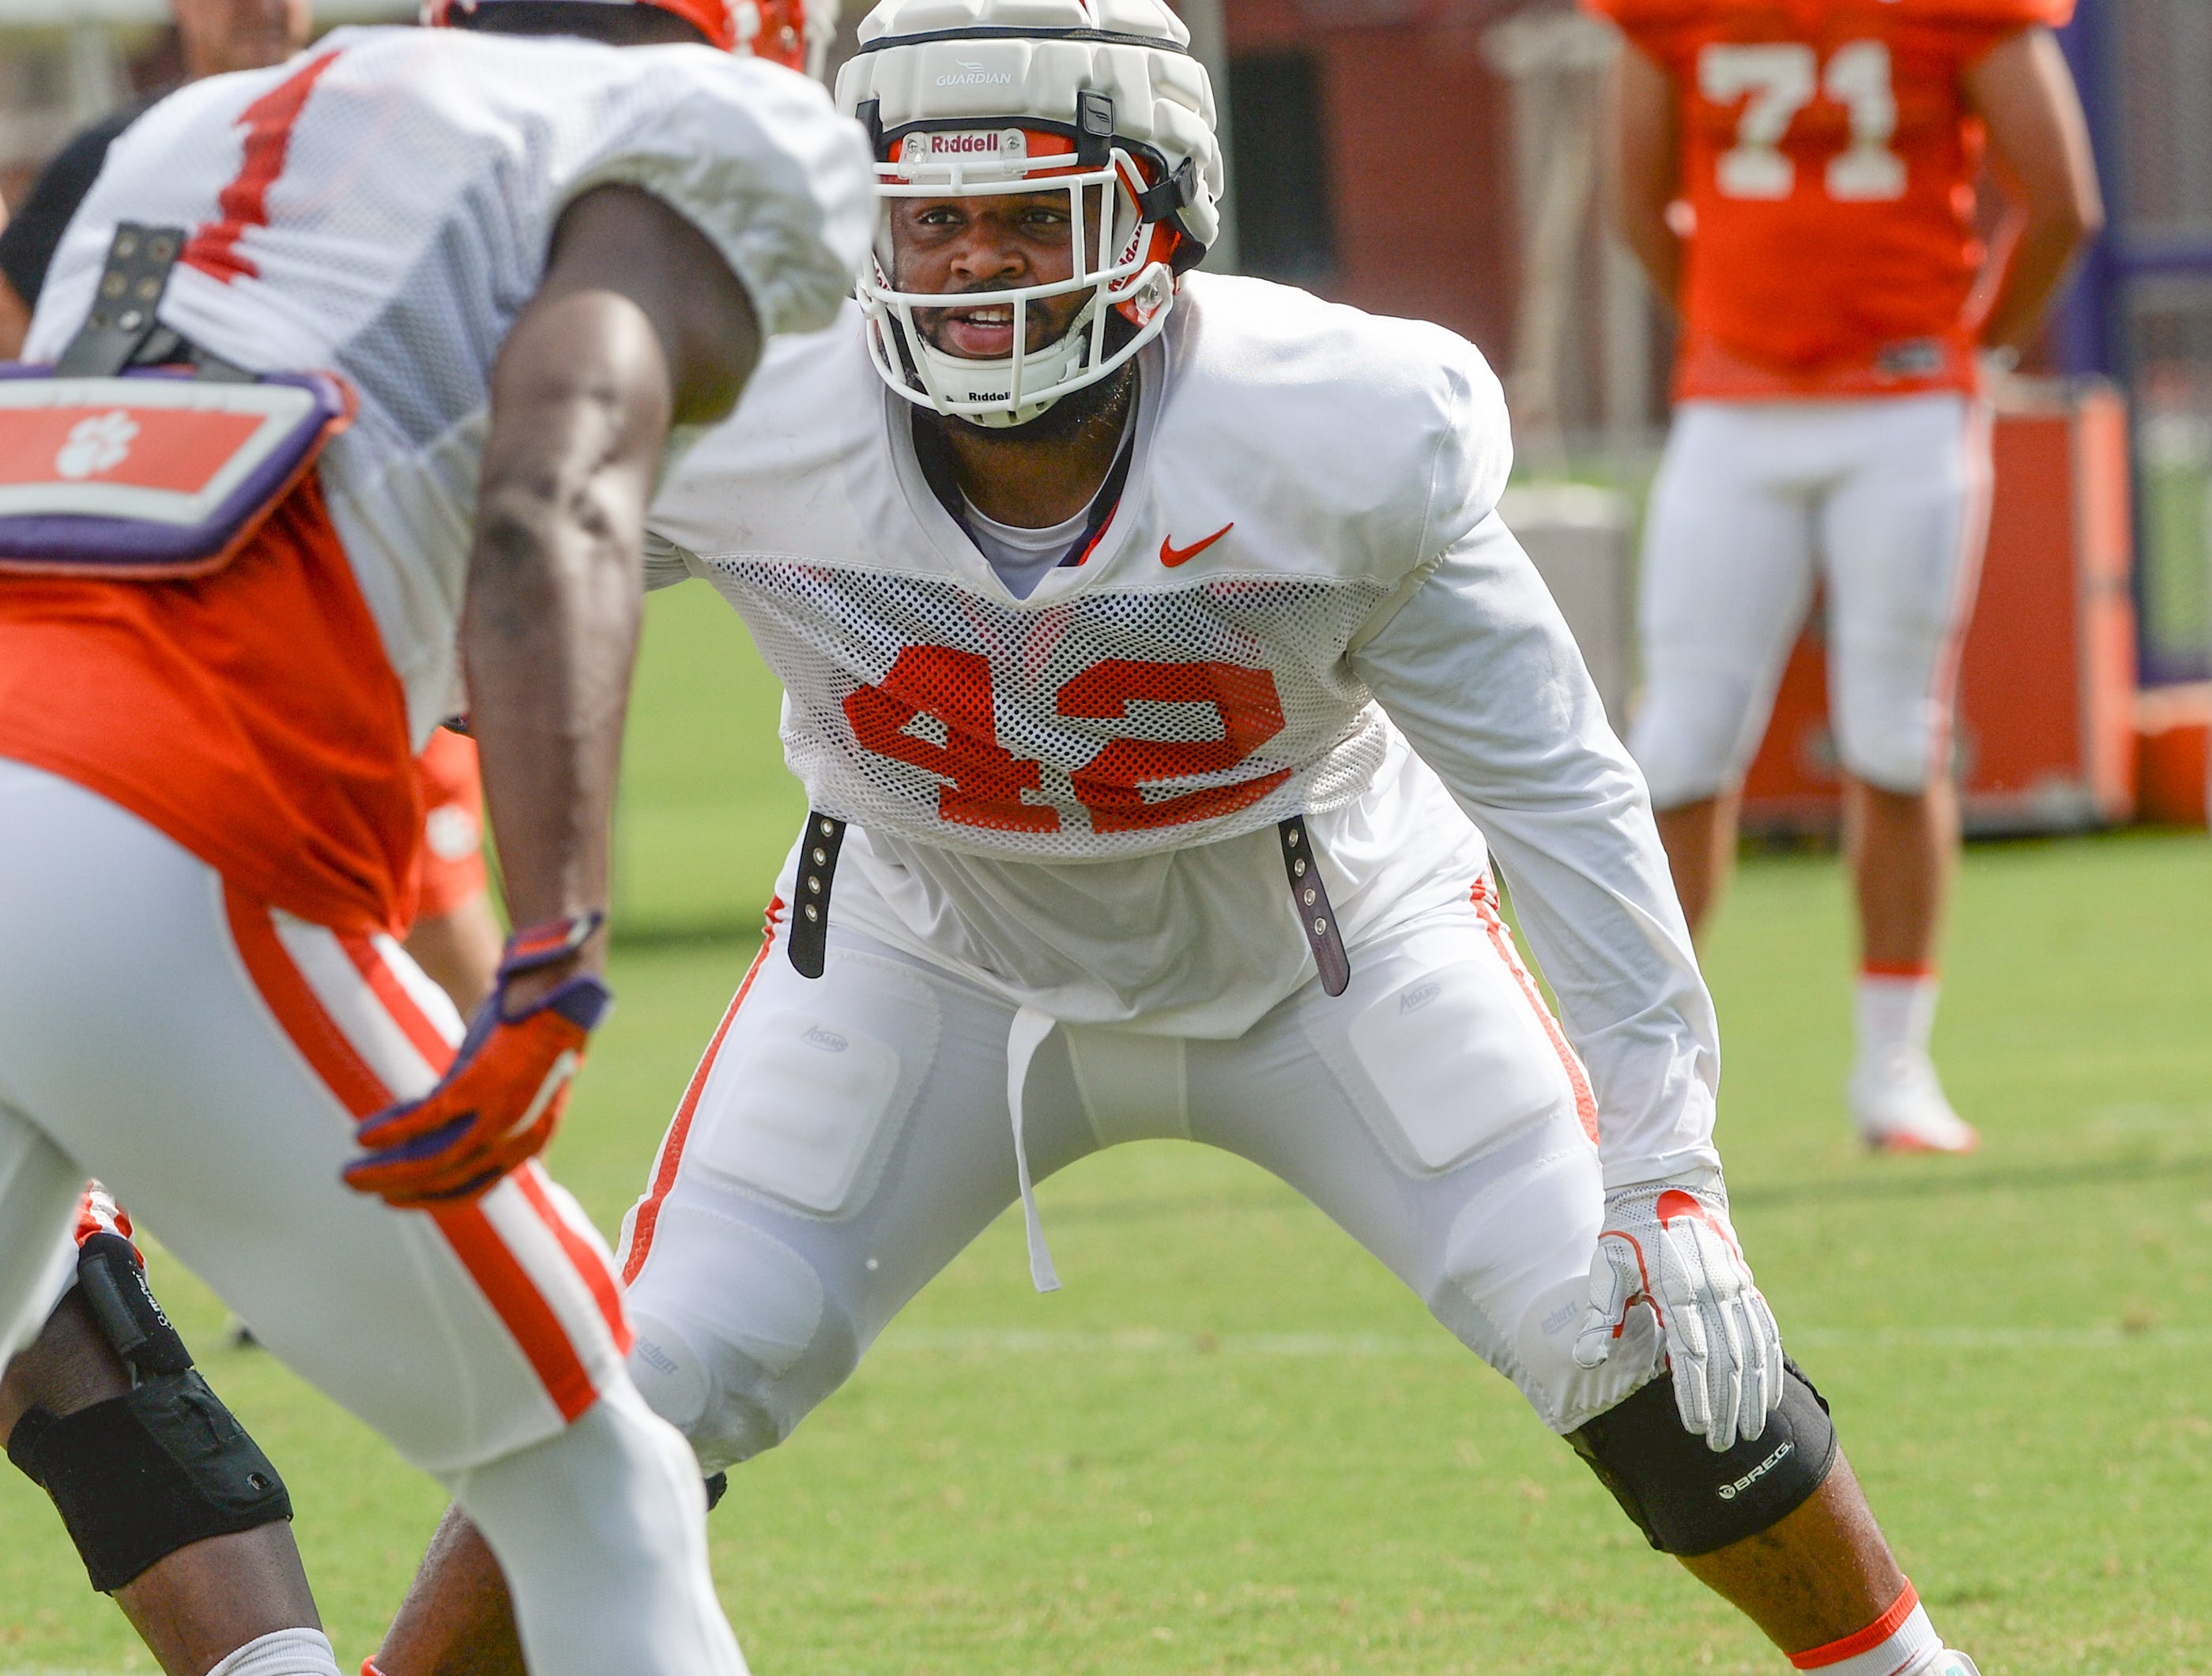 Clemson defensive lineman Christian Wilkins (42) during fall practice in Clemson on Wednesday.